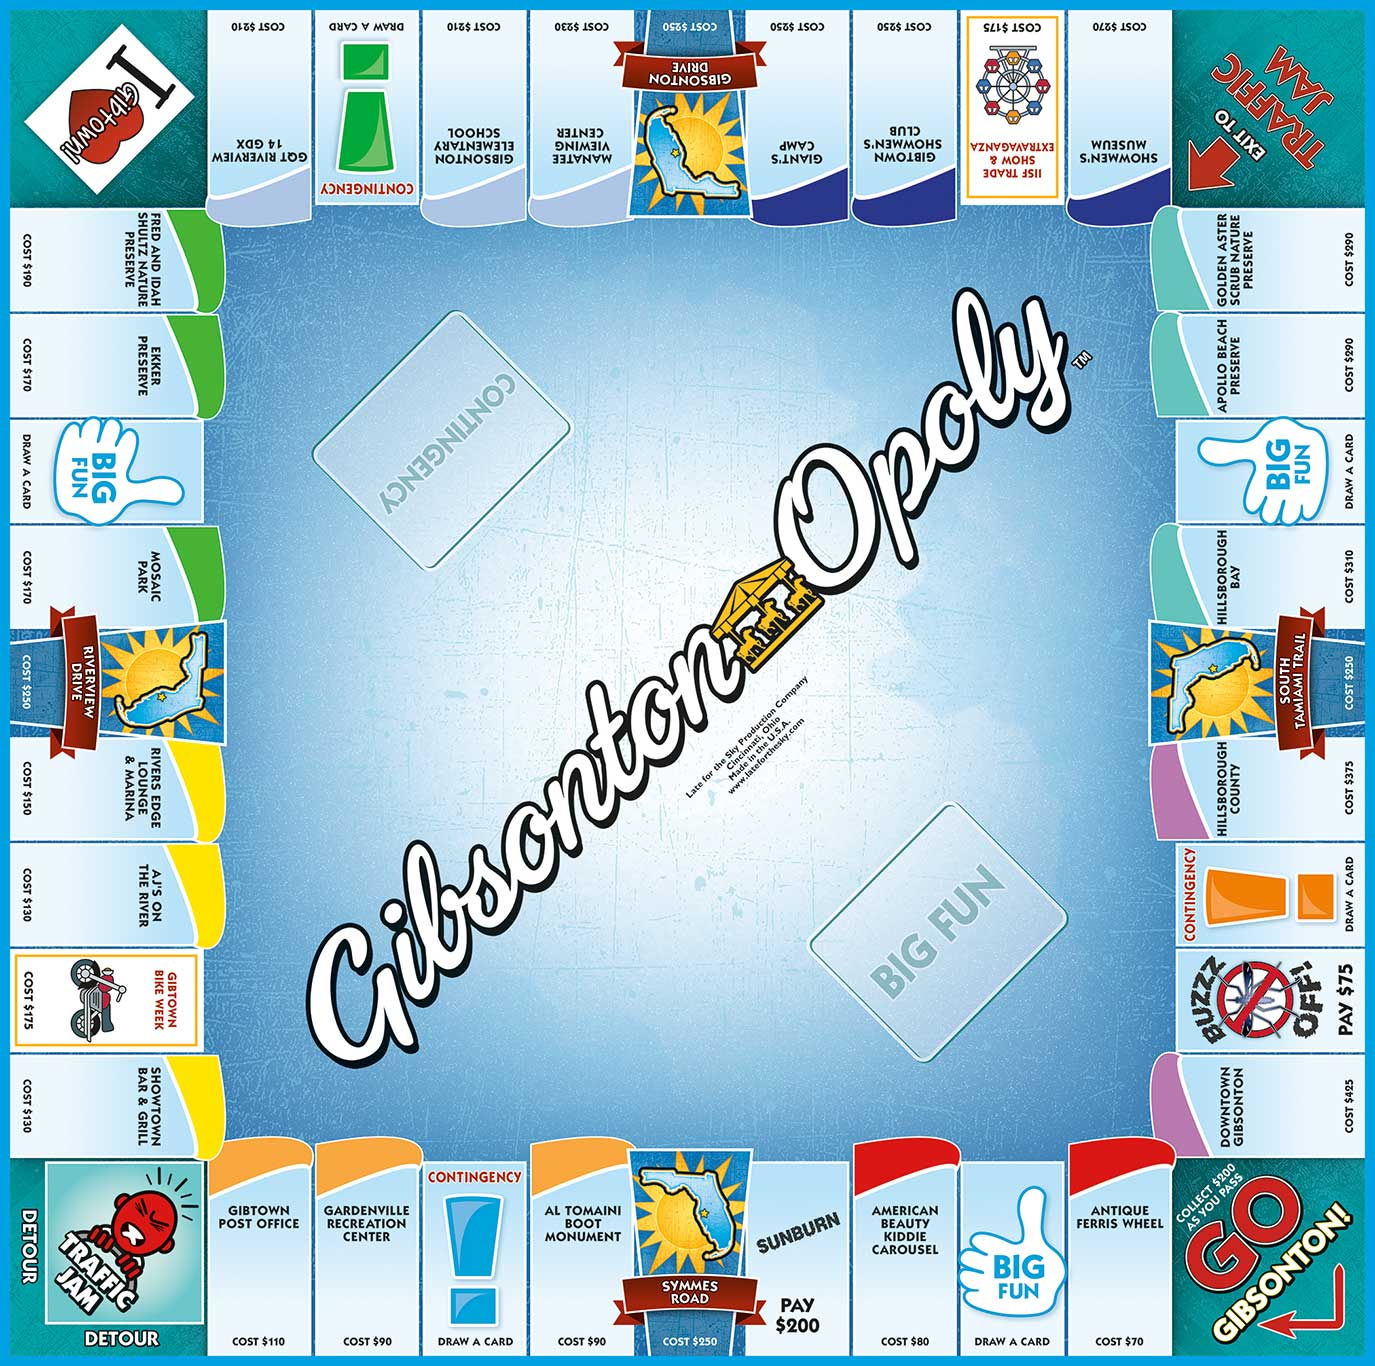 GIBSONTON-OPOLY Board Game